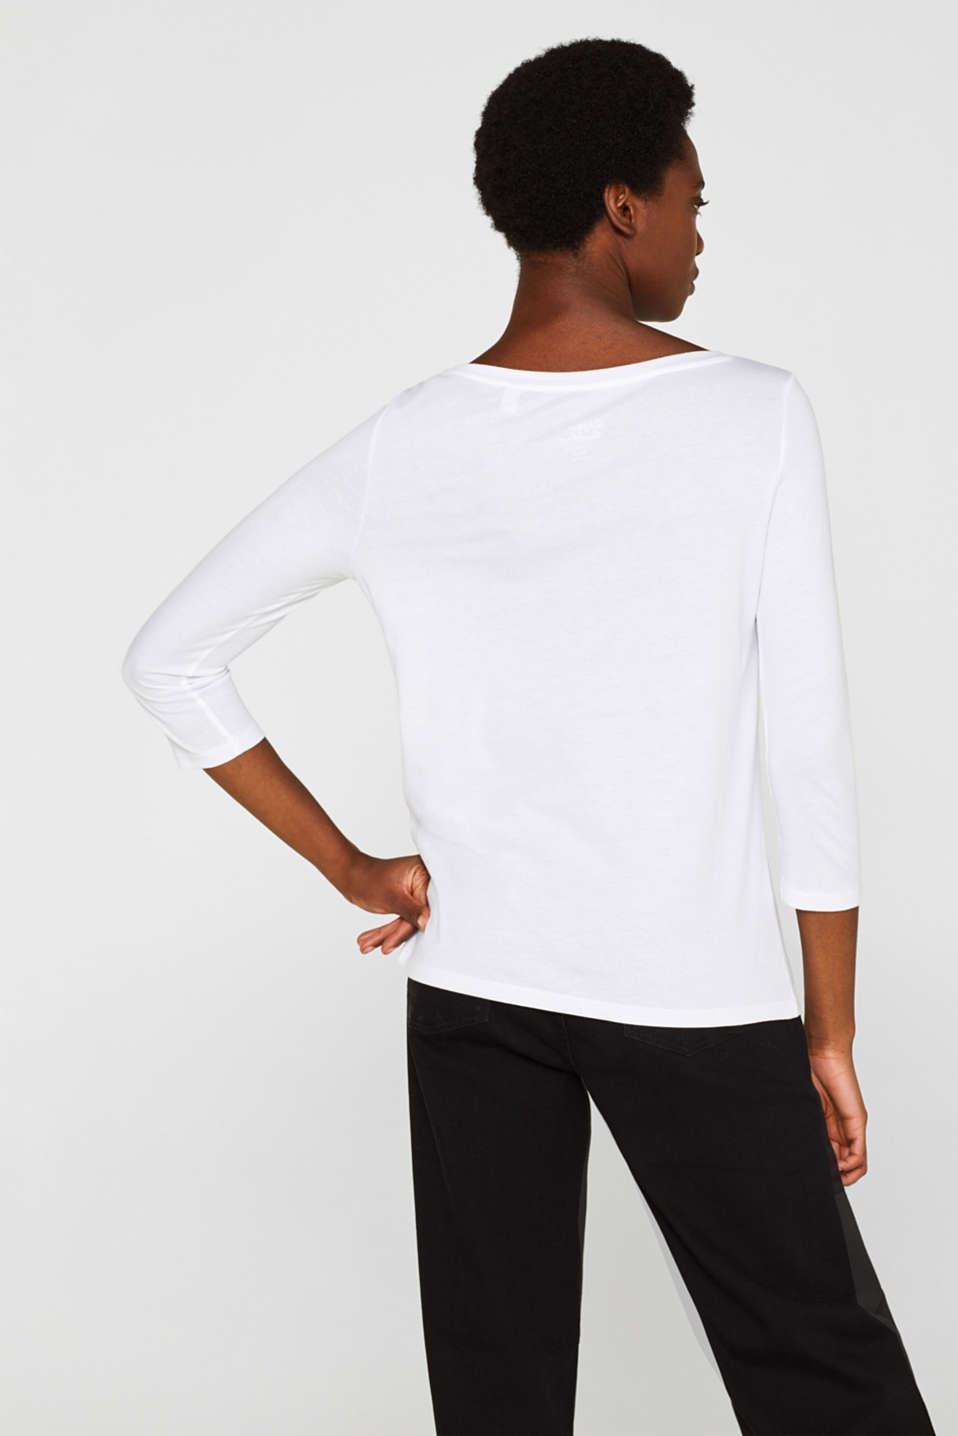 Two-pack: Long sleeve top with organic cotton, WHITE, detail image number 2